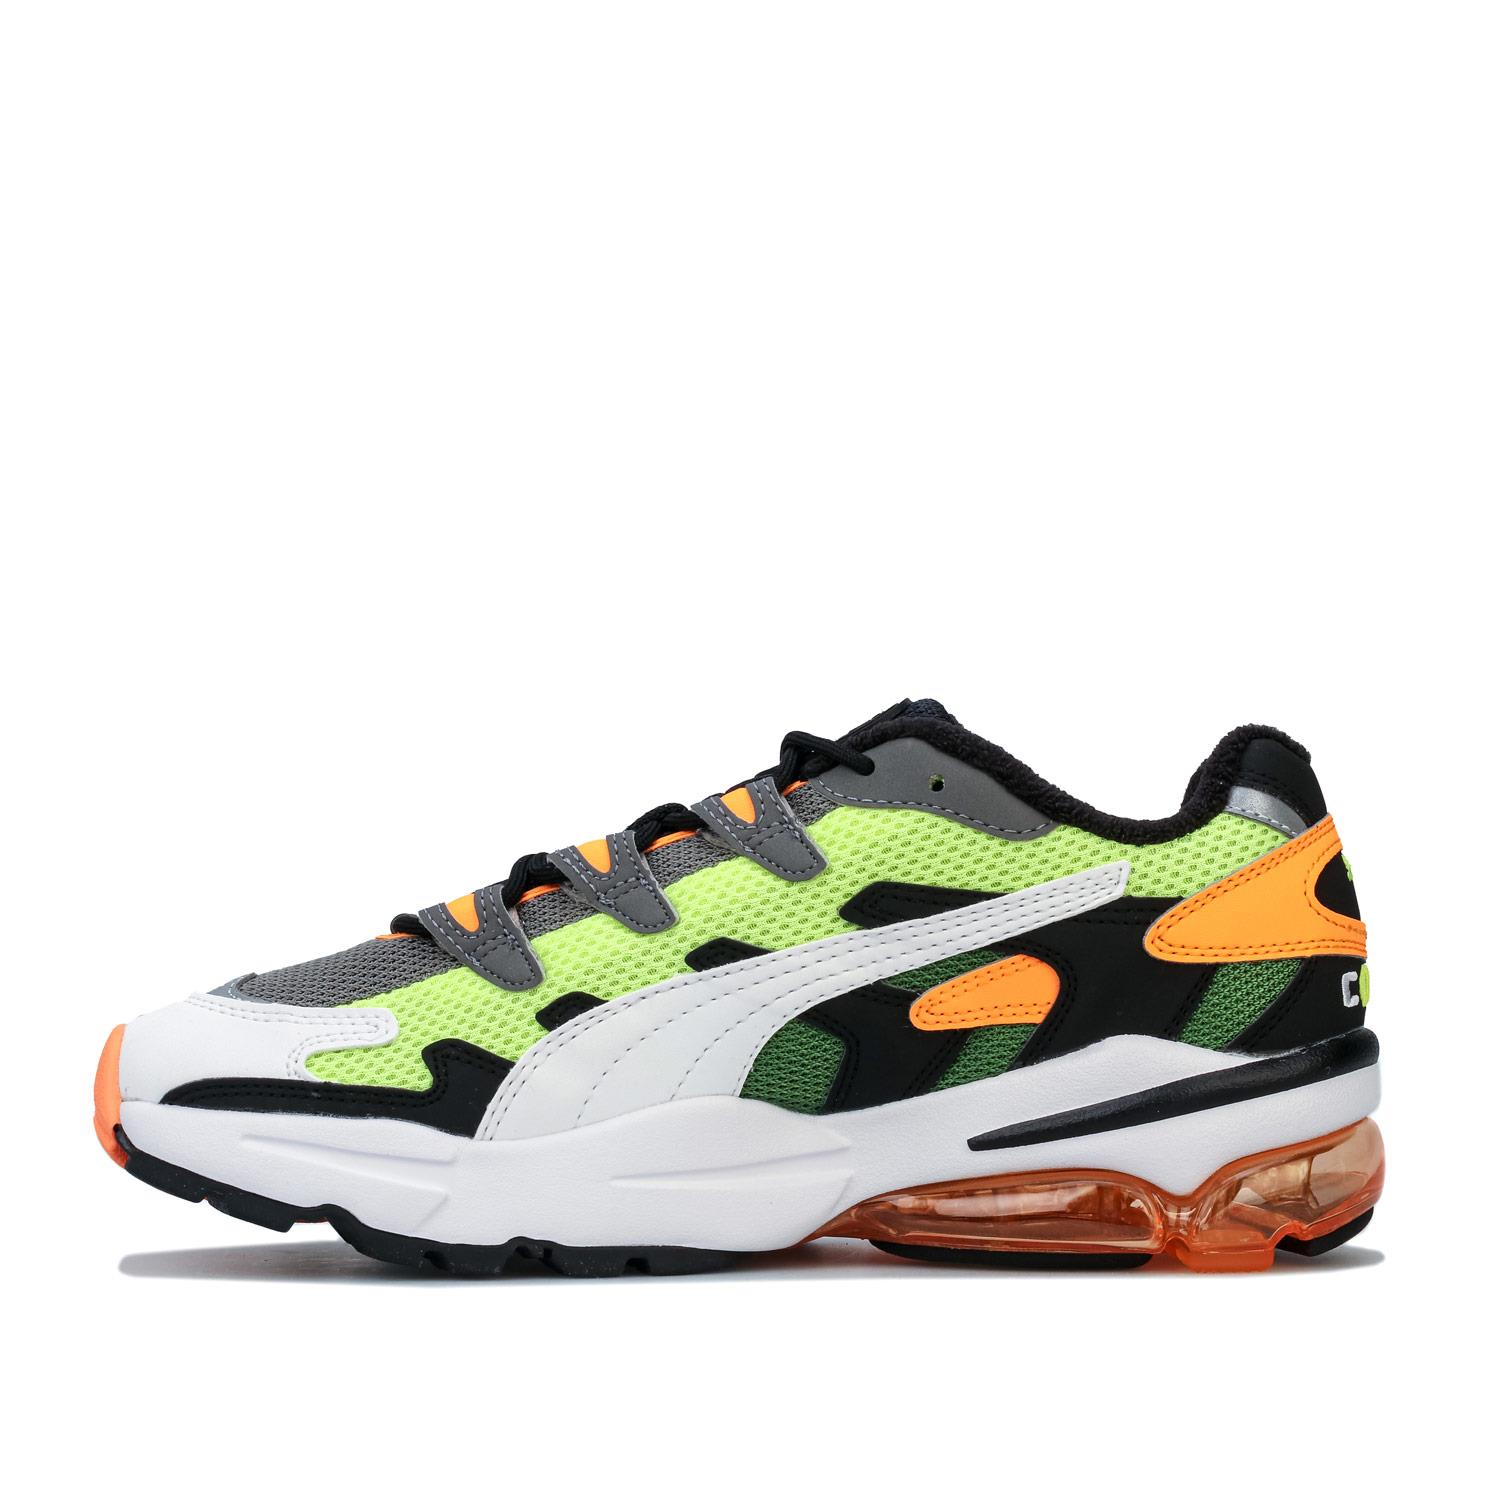 Mens-Puma-Cell-Alien-OG-Trainers-in-Blue-Green-Black-Red-Blue-and-Yellow thumbnail 25